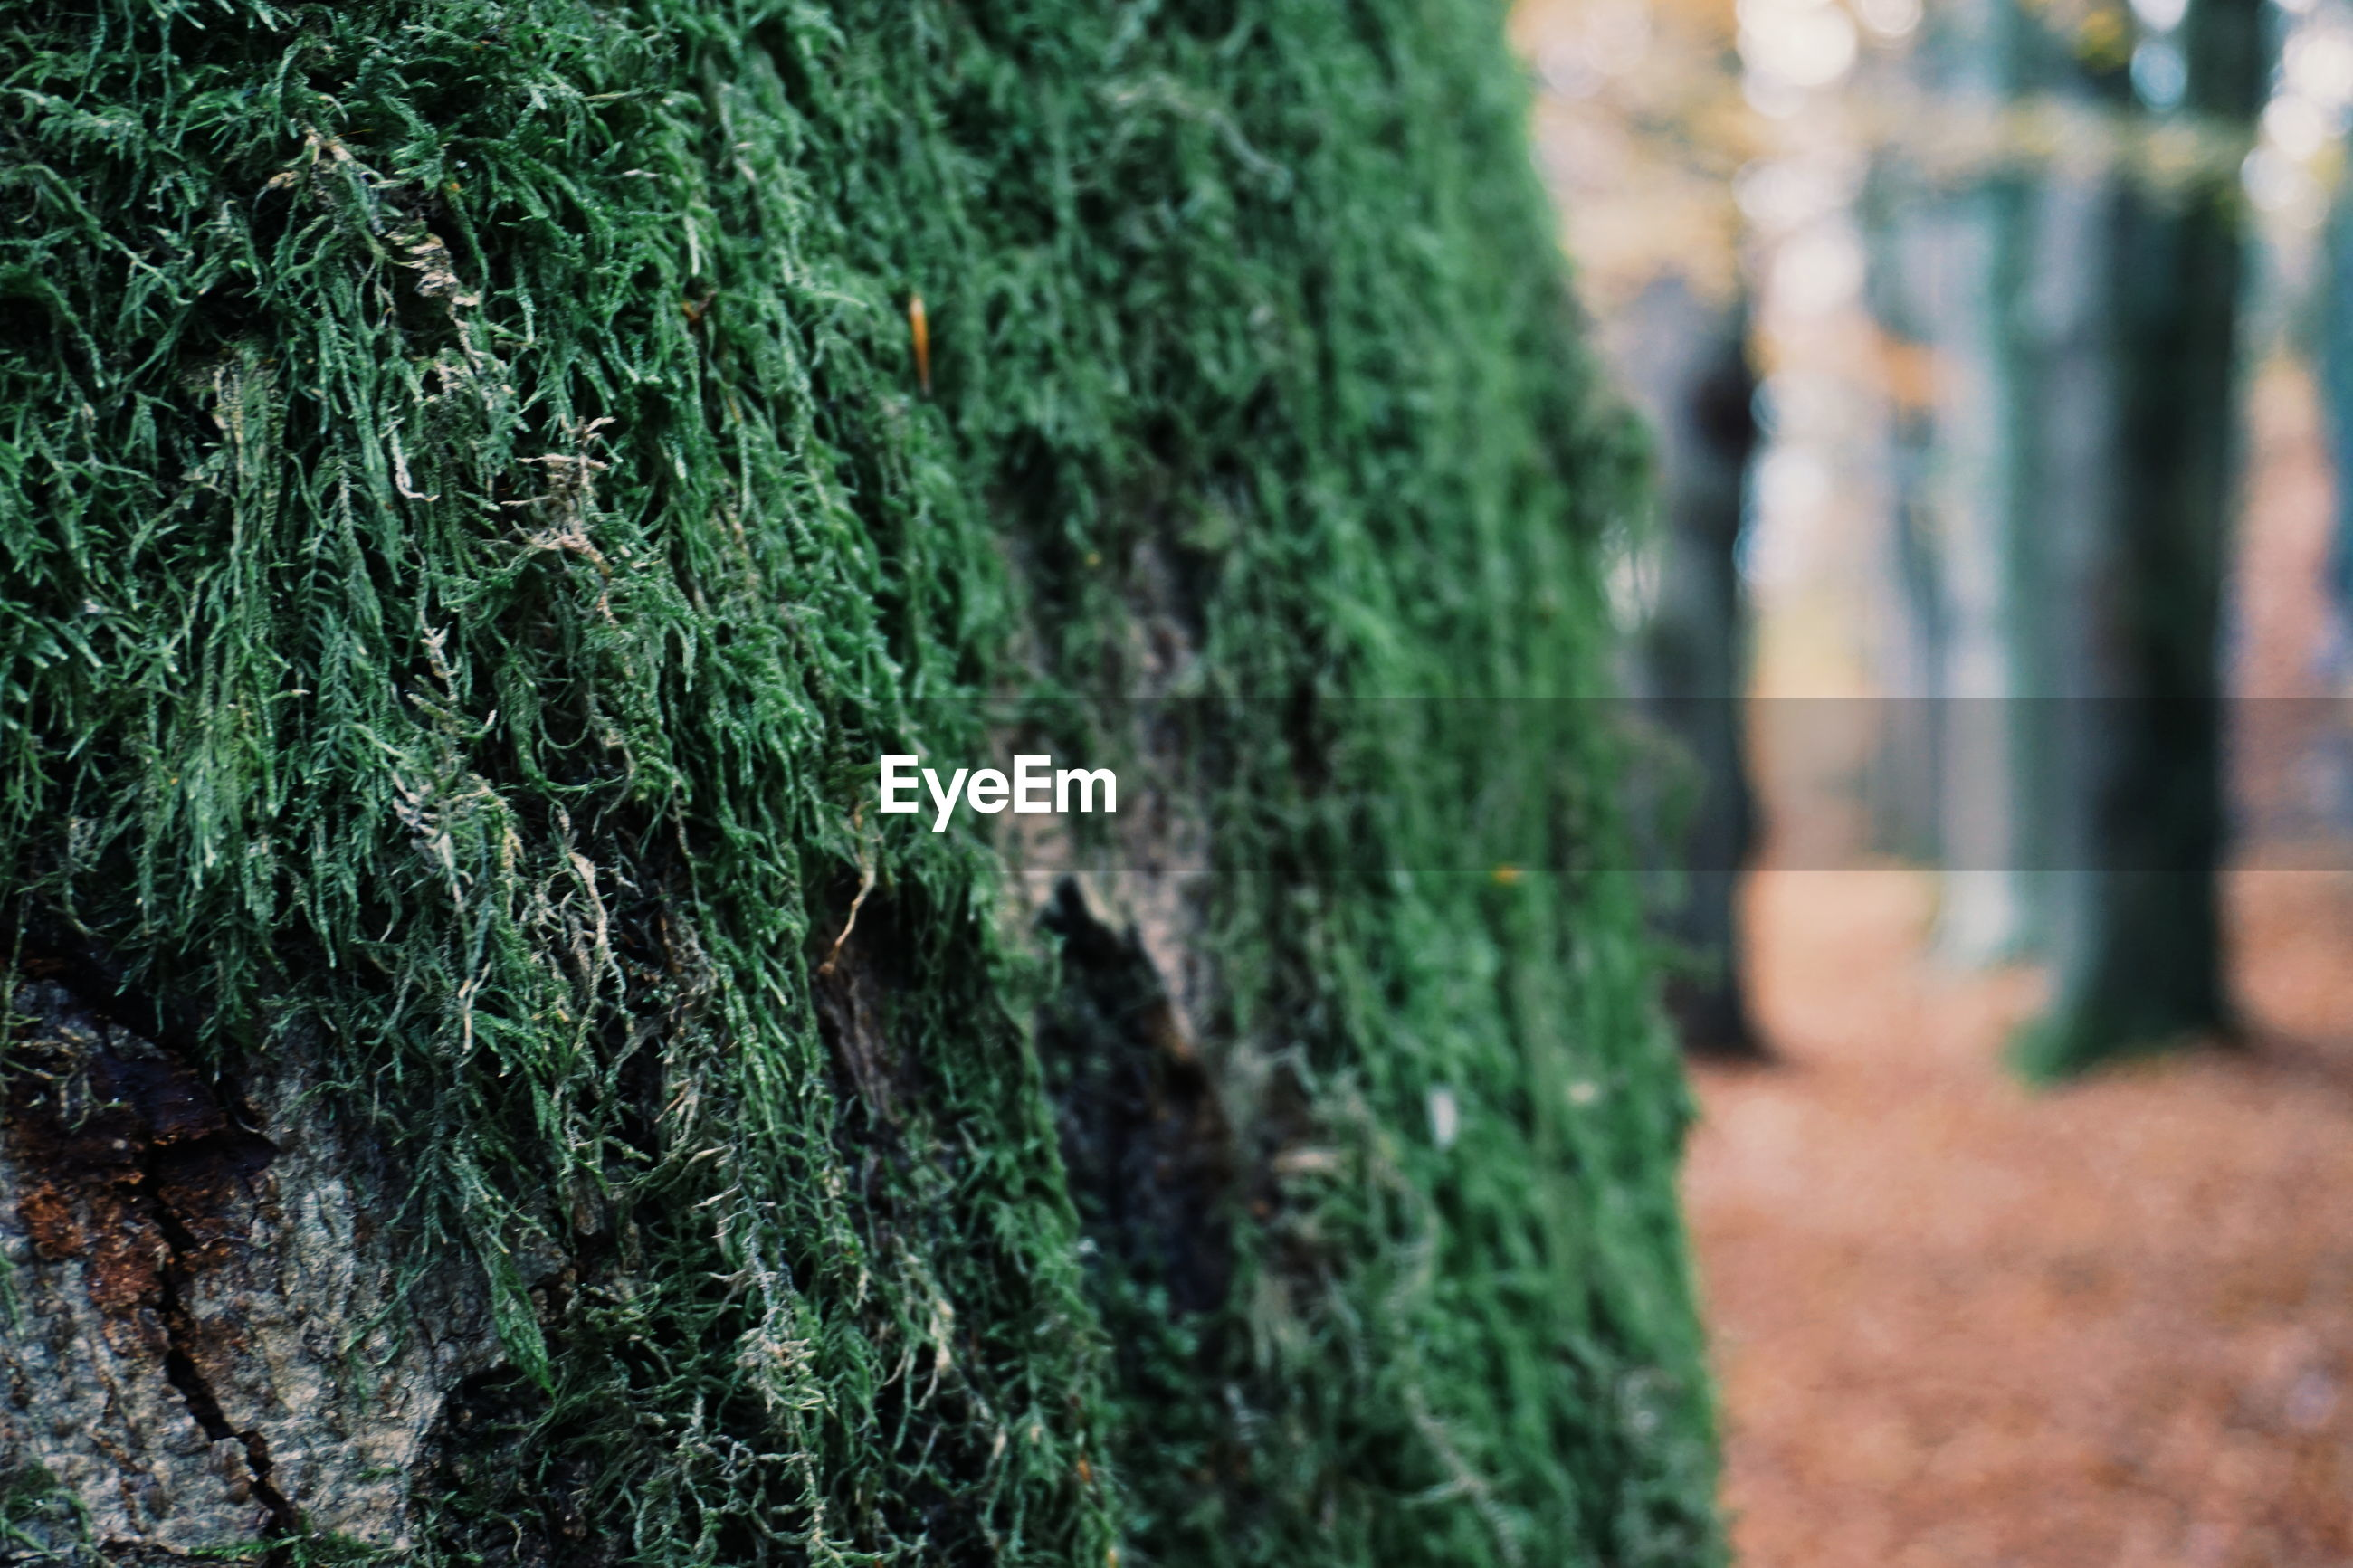 green color, nature, tree trunk, day, outdoors, no people, tree, focus on foreground, growth, beauty in nature, moss, close-up